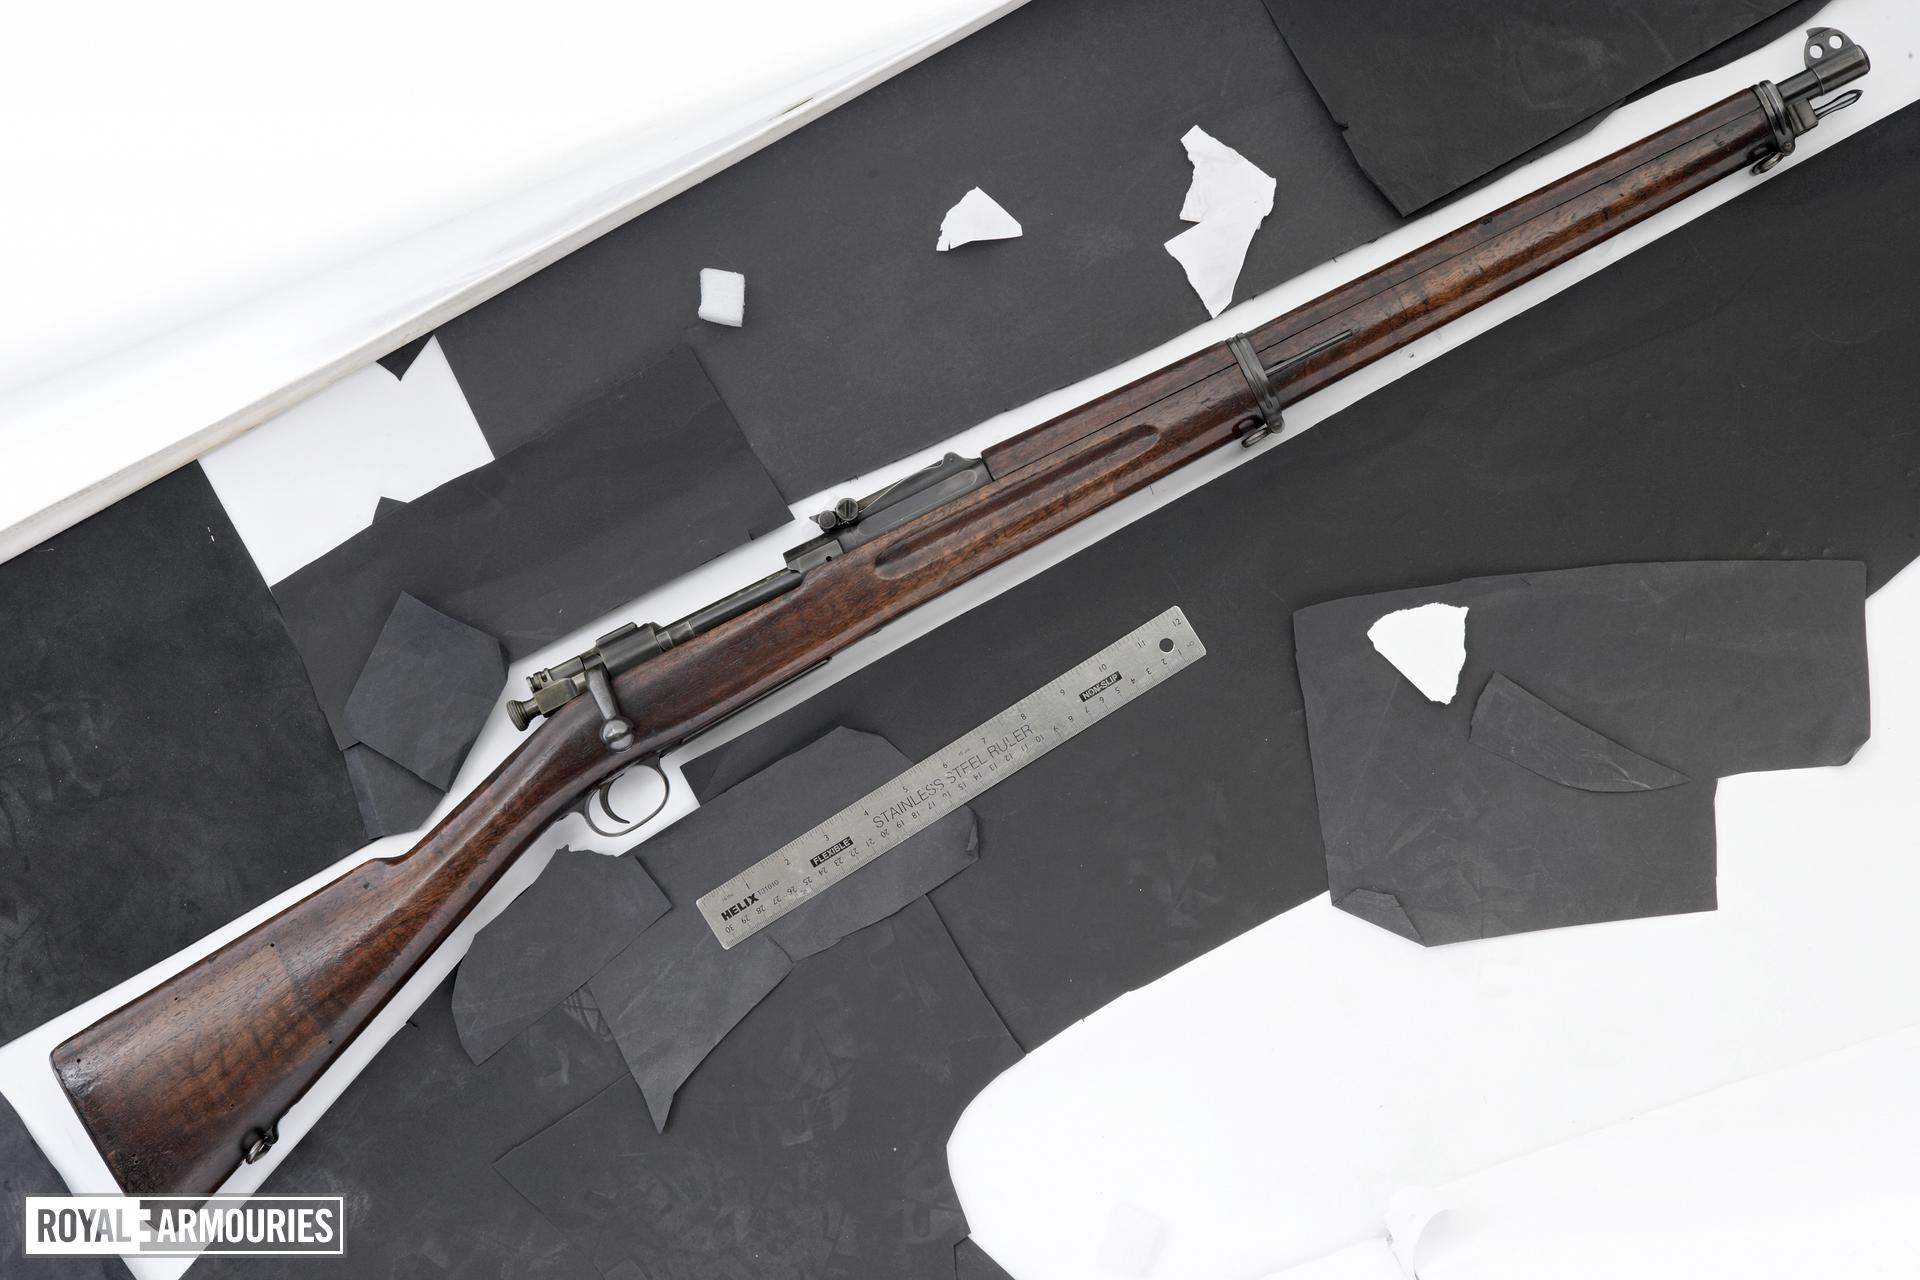 Centrefire bolt-action rifle - Springfield Model 1903